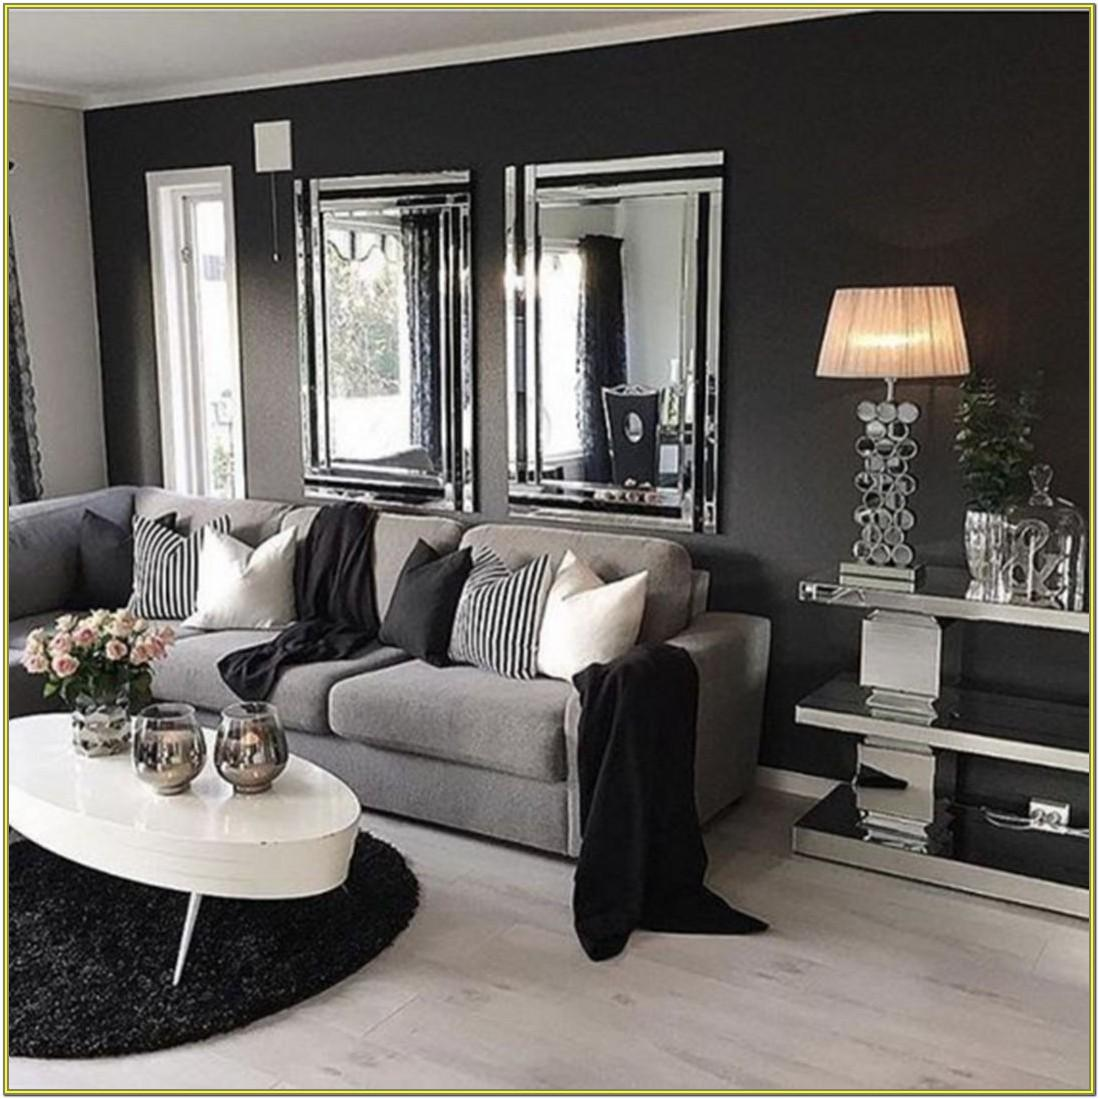 Living Room Ideas With Black Accents